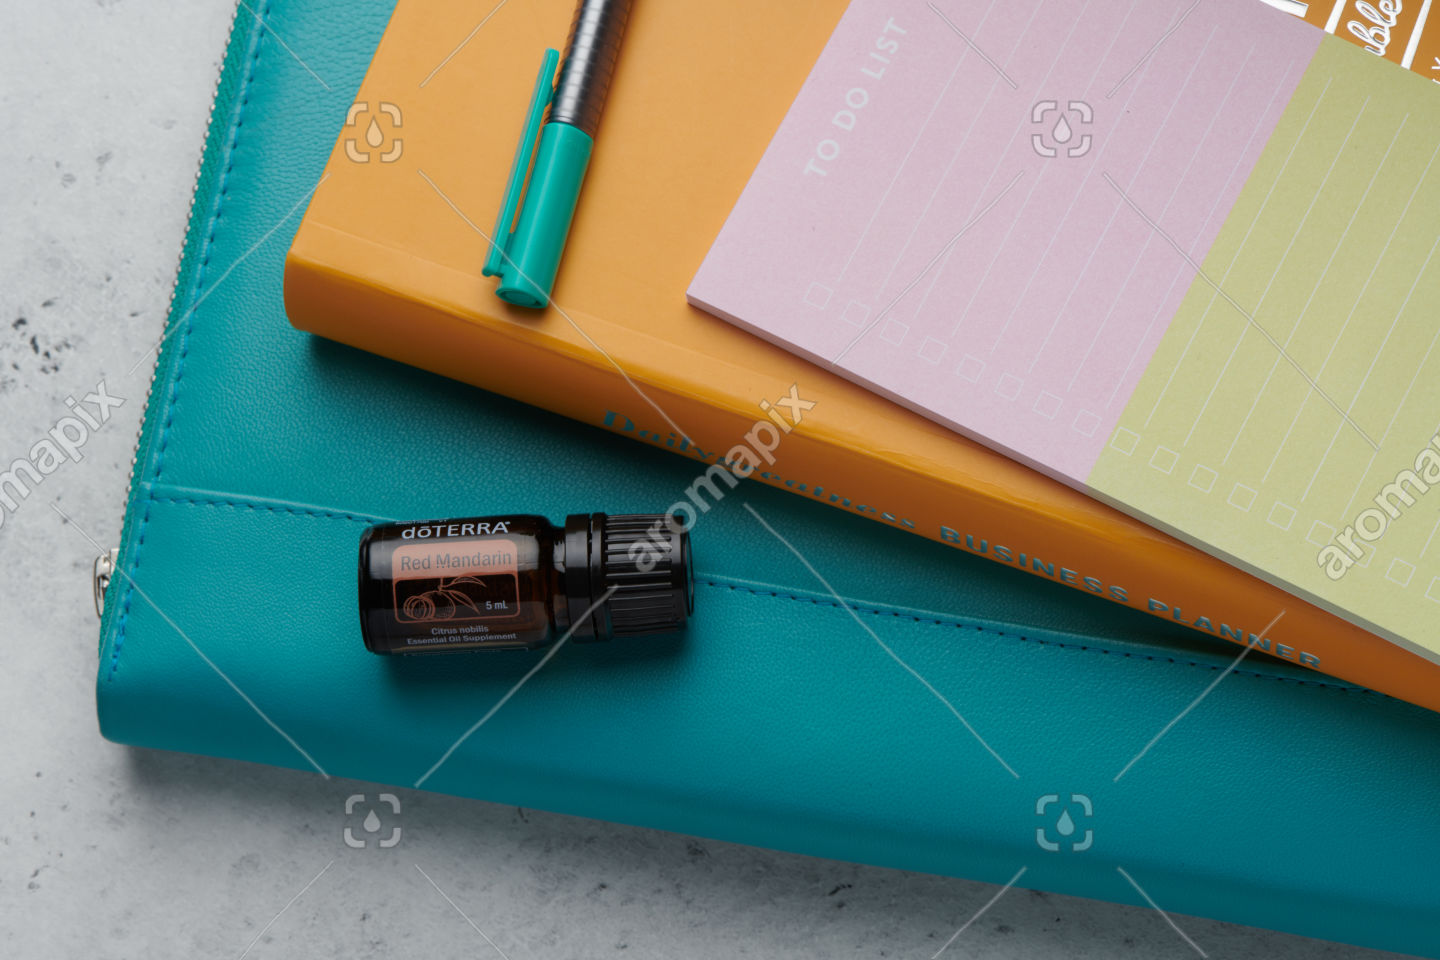 doTERRA Red Mandarin product with business tools